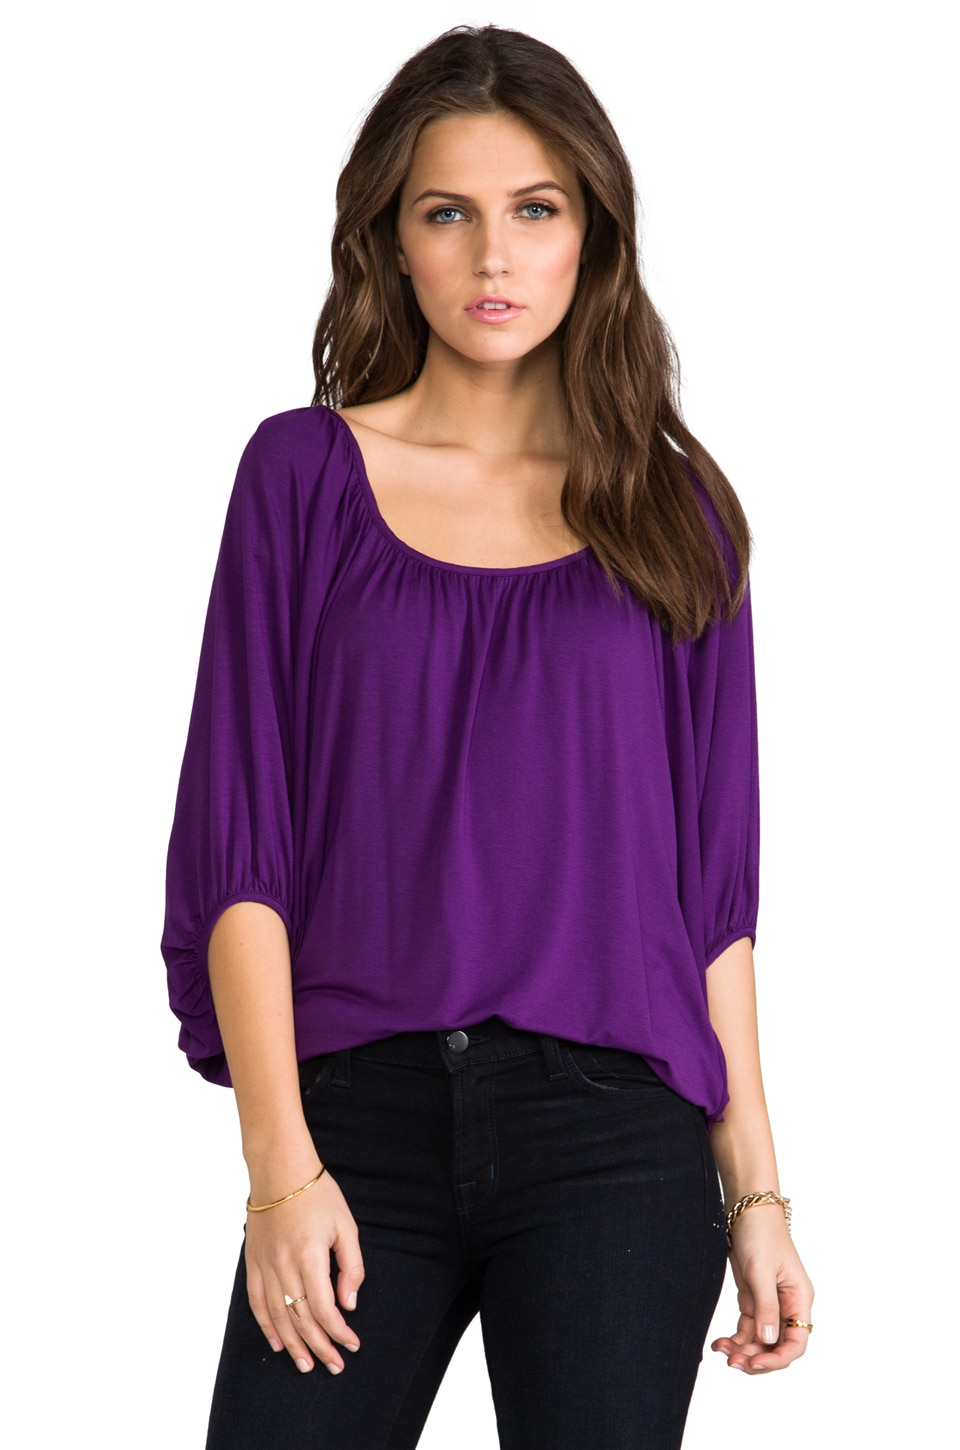 James & Joy James Top in Plum